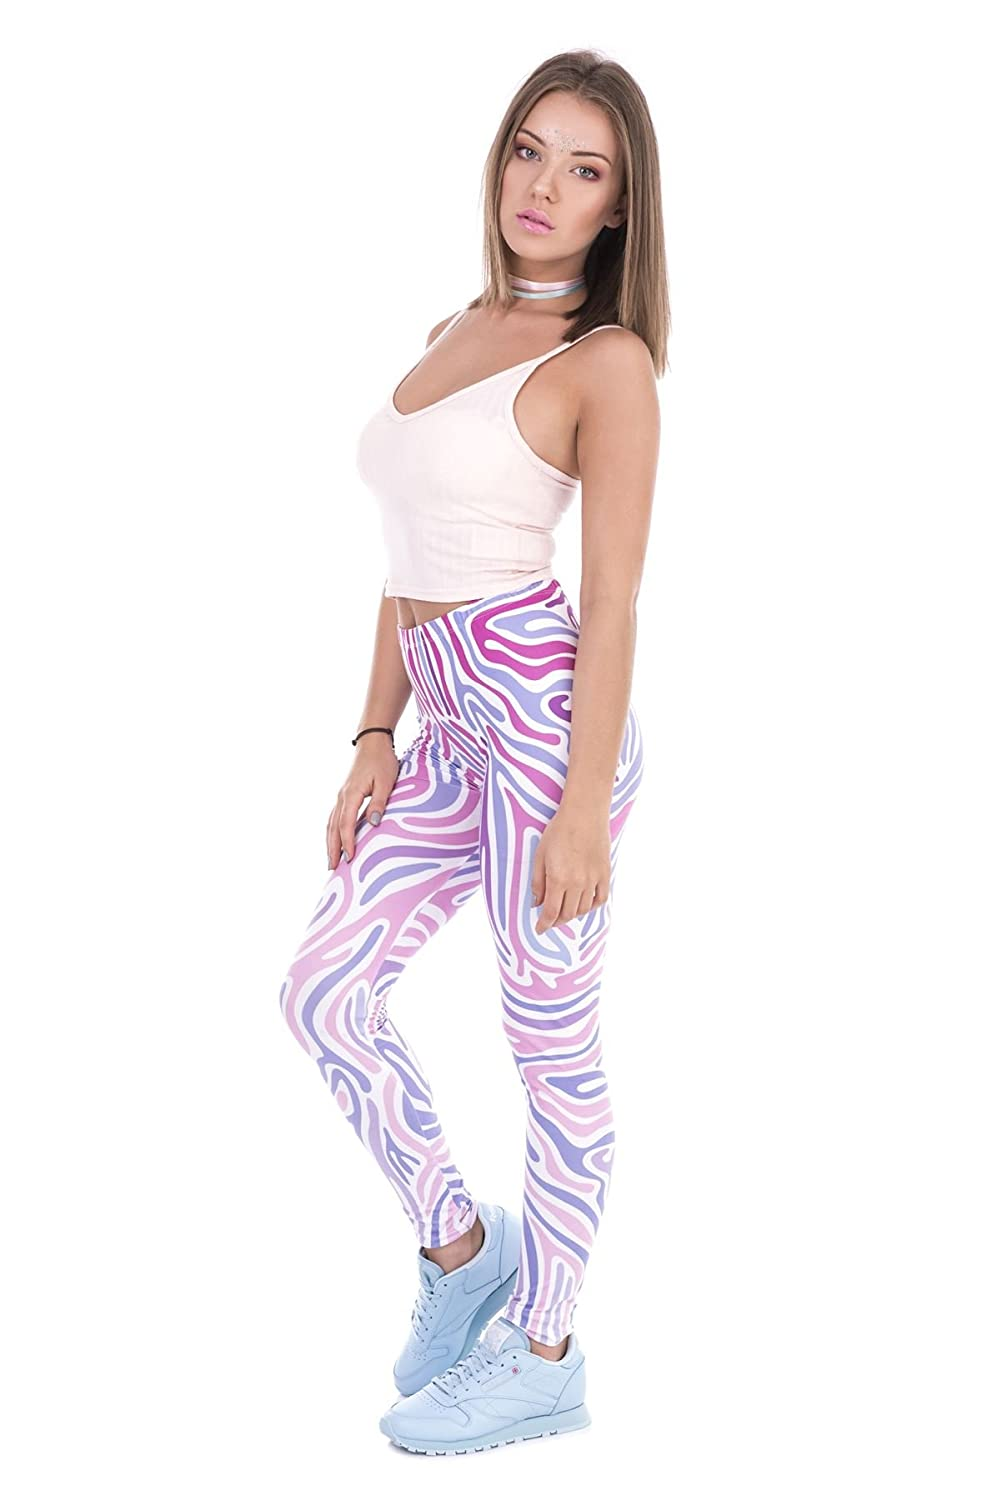 a882ea61a4af5 Sports & Outdoor Clothing Kukubird Unicorn Flamingo Emoji Womens Gym  Fitness Leggings Running Yoga Pilates Skinny Pants Tights Size 6-10  Stretchable